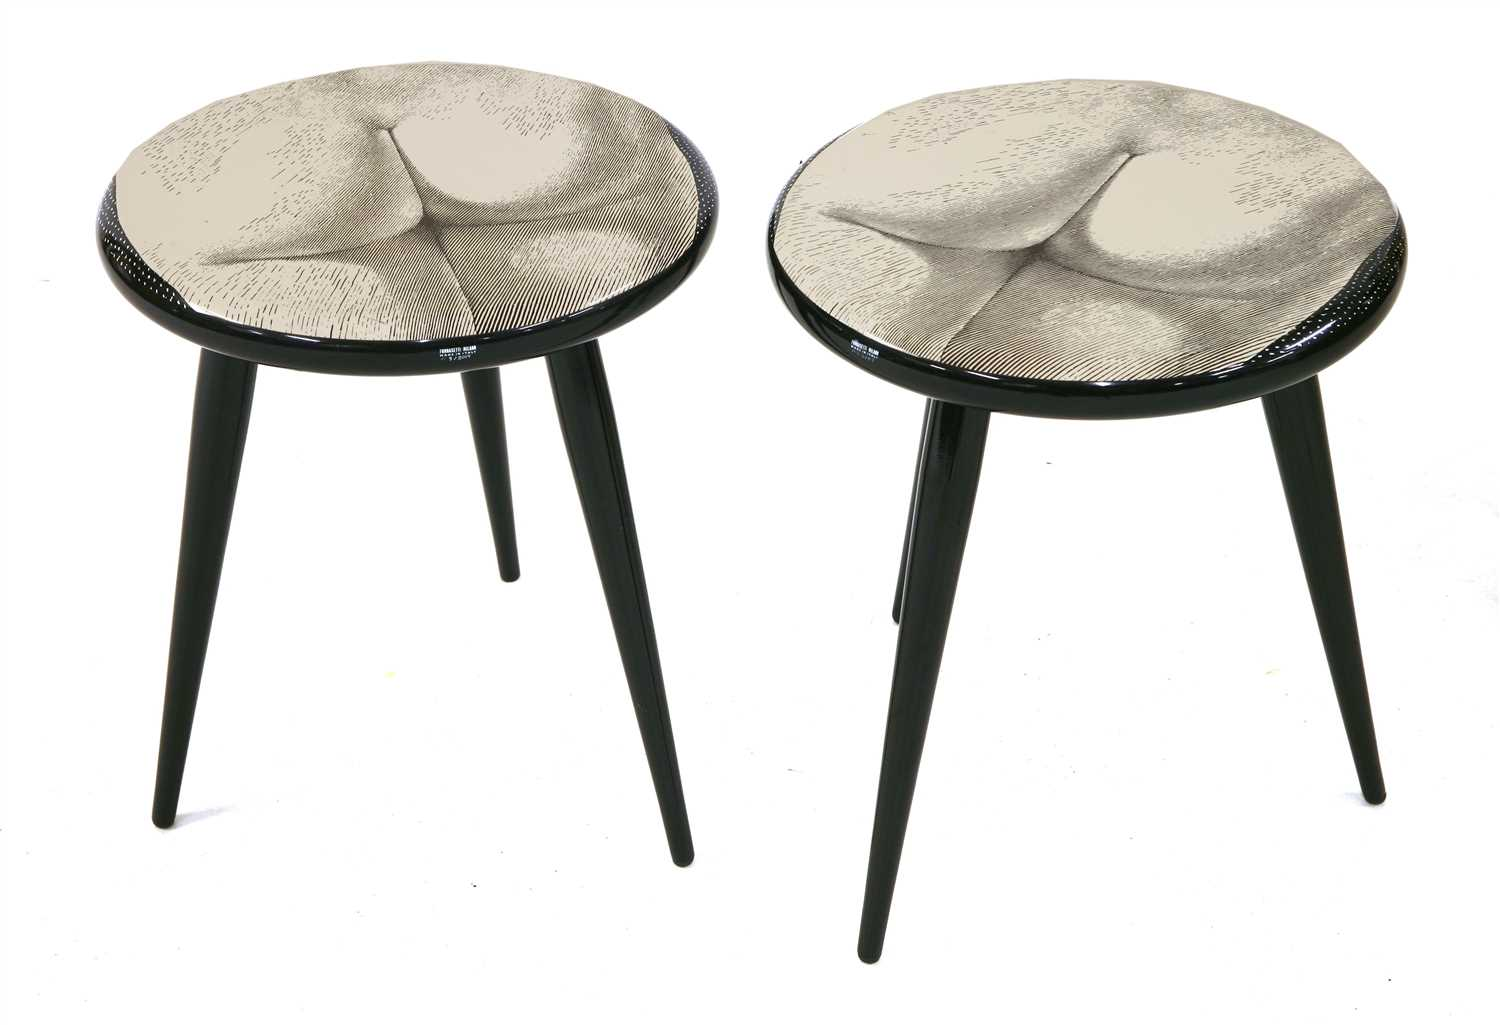 Lot 465-A pair of 'Tergonomico' low stools